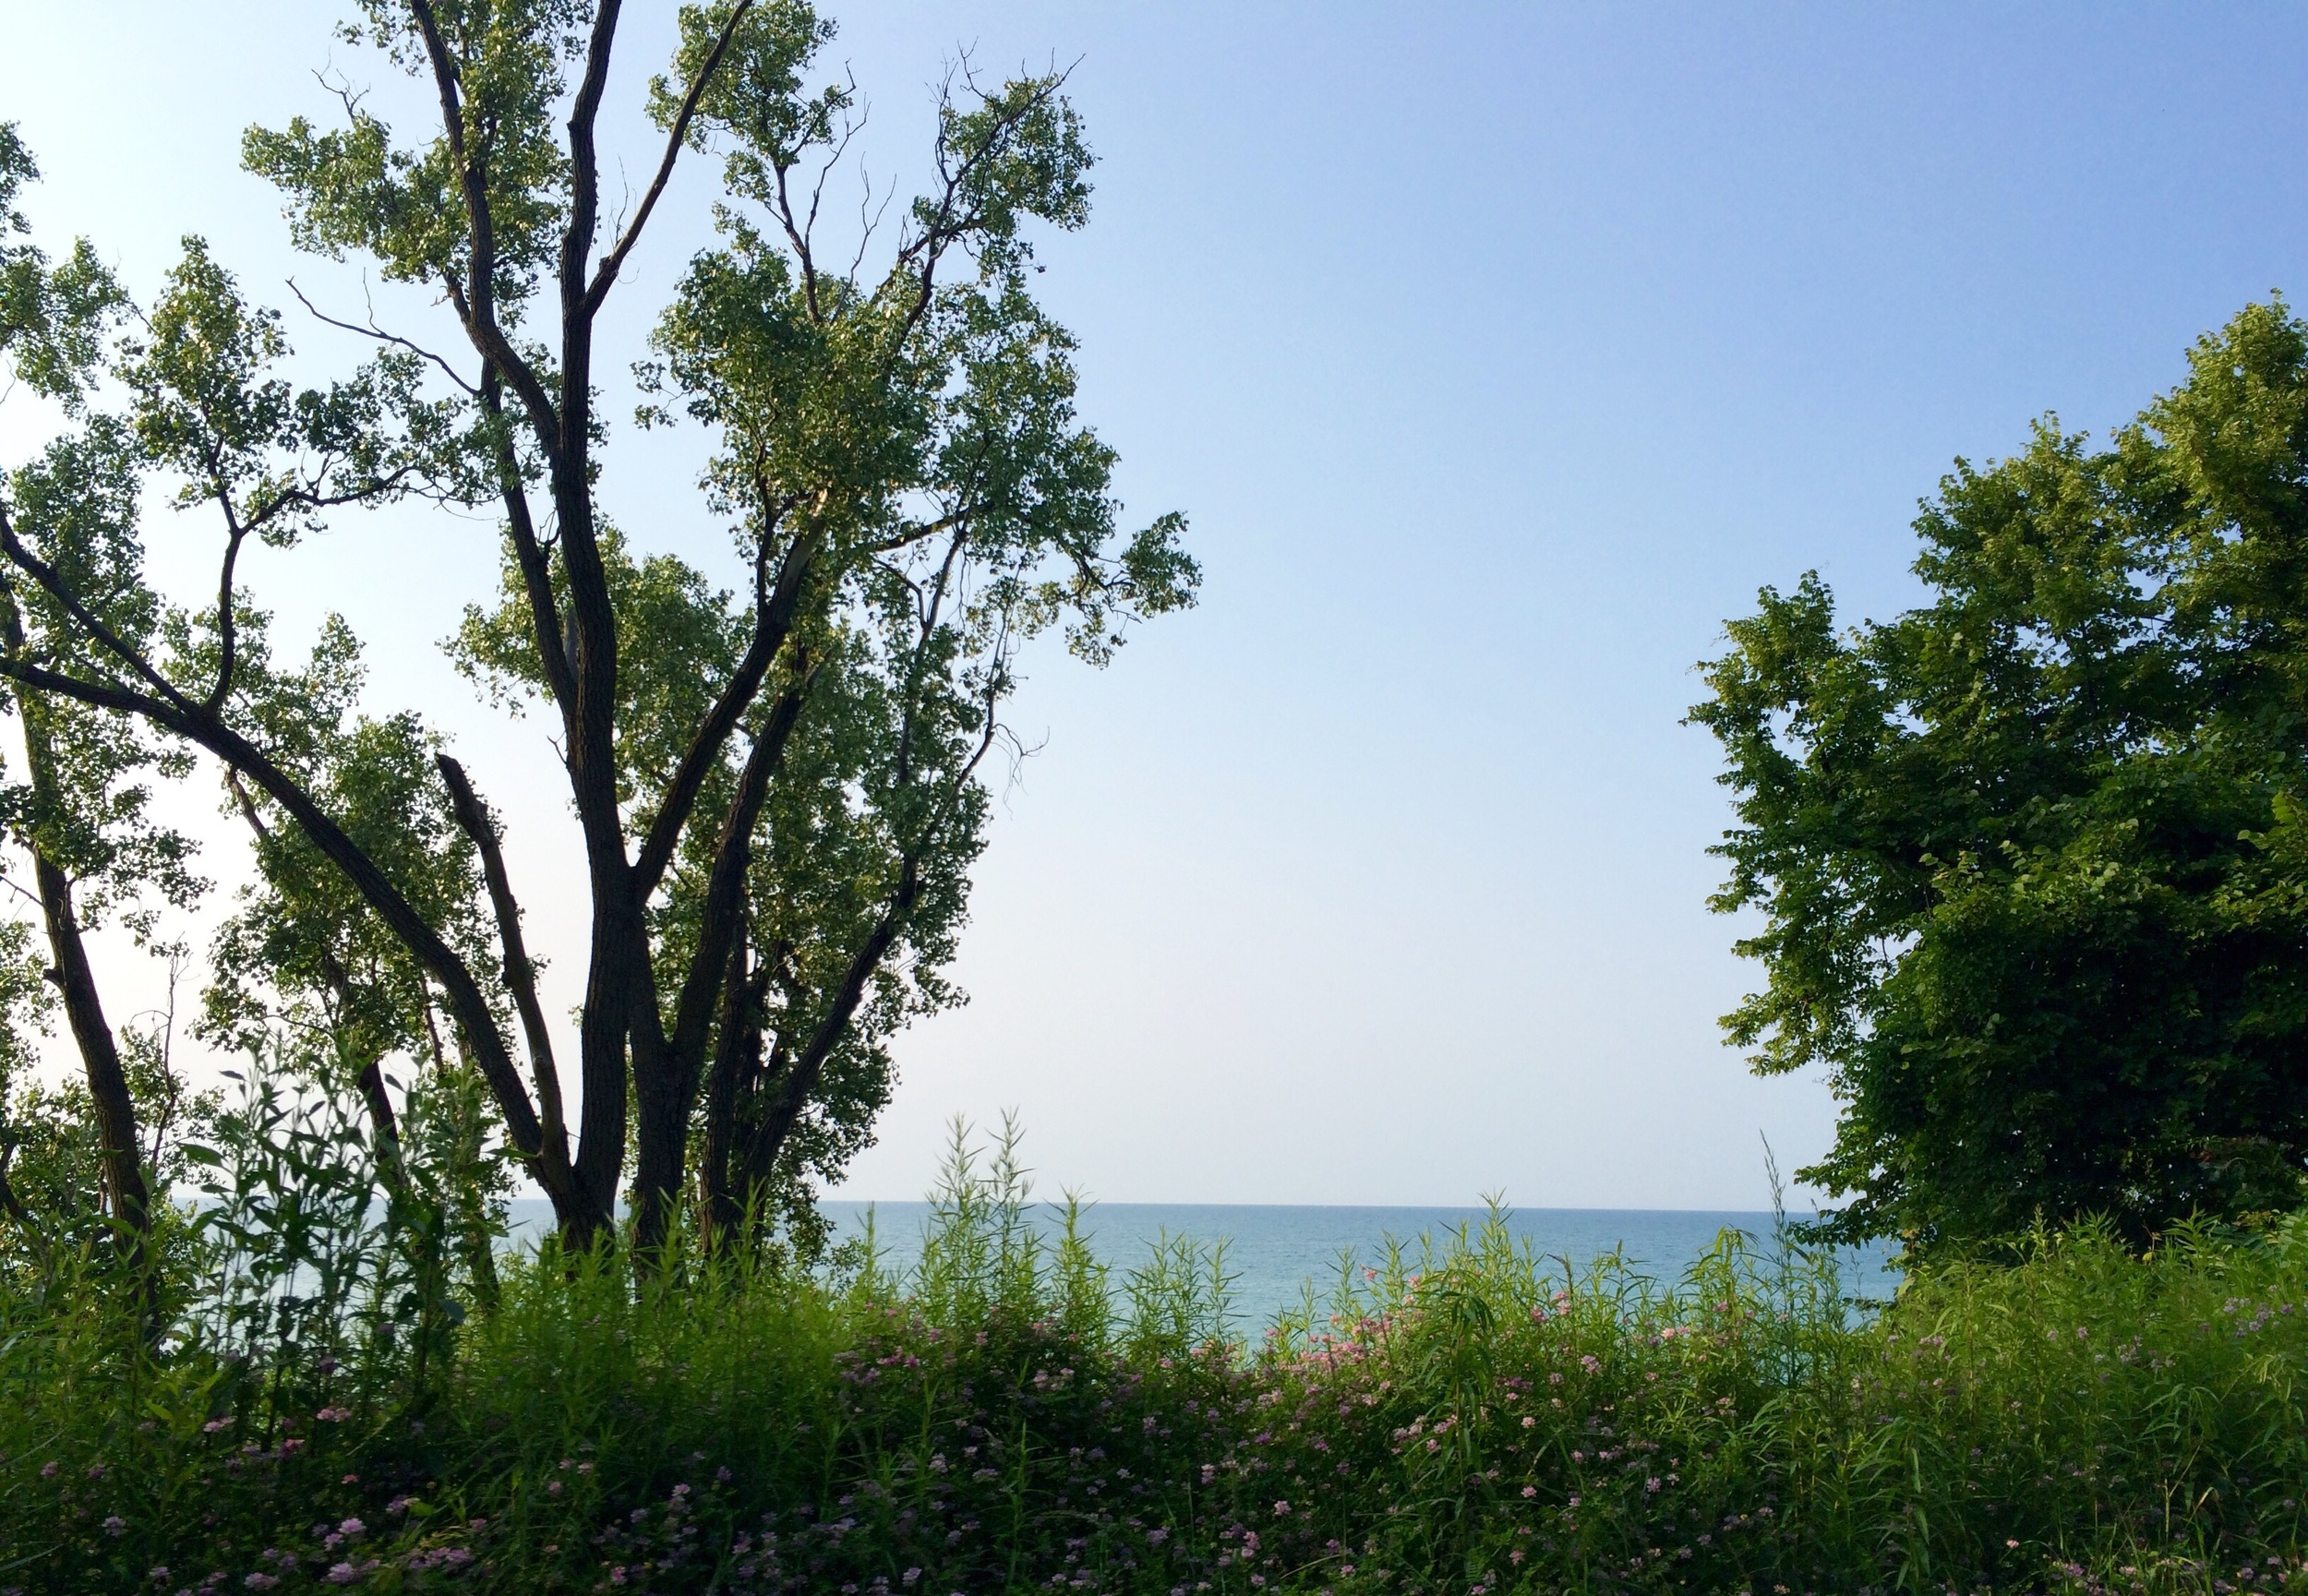 Beverly shores